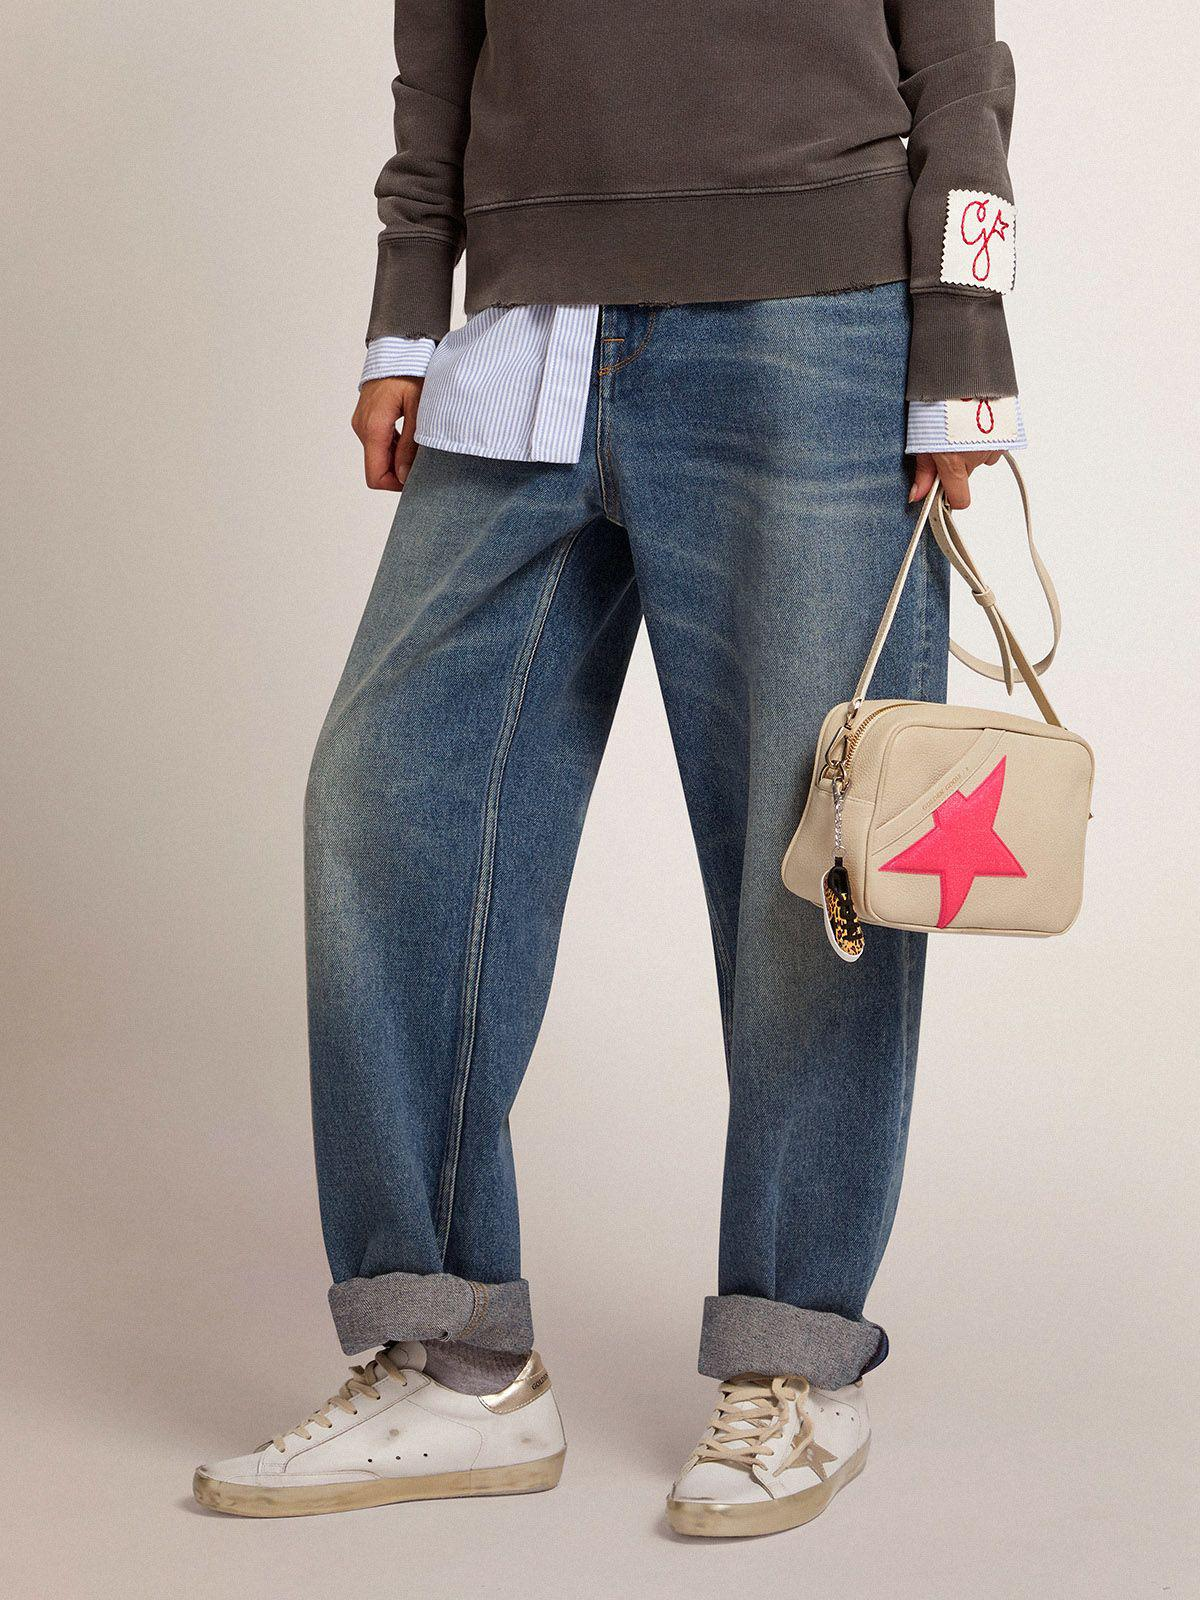 Golden Collection Kim jeans with a medium wash